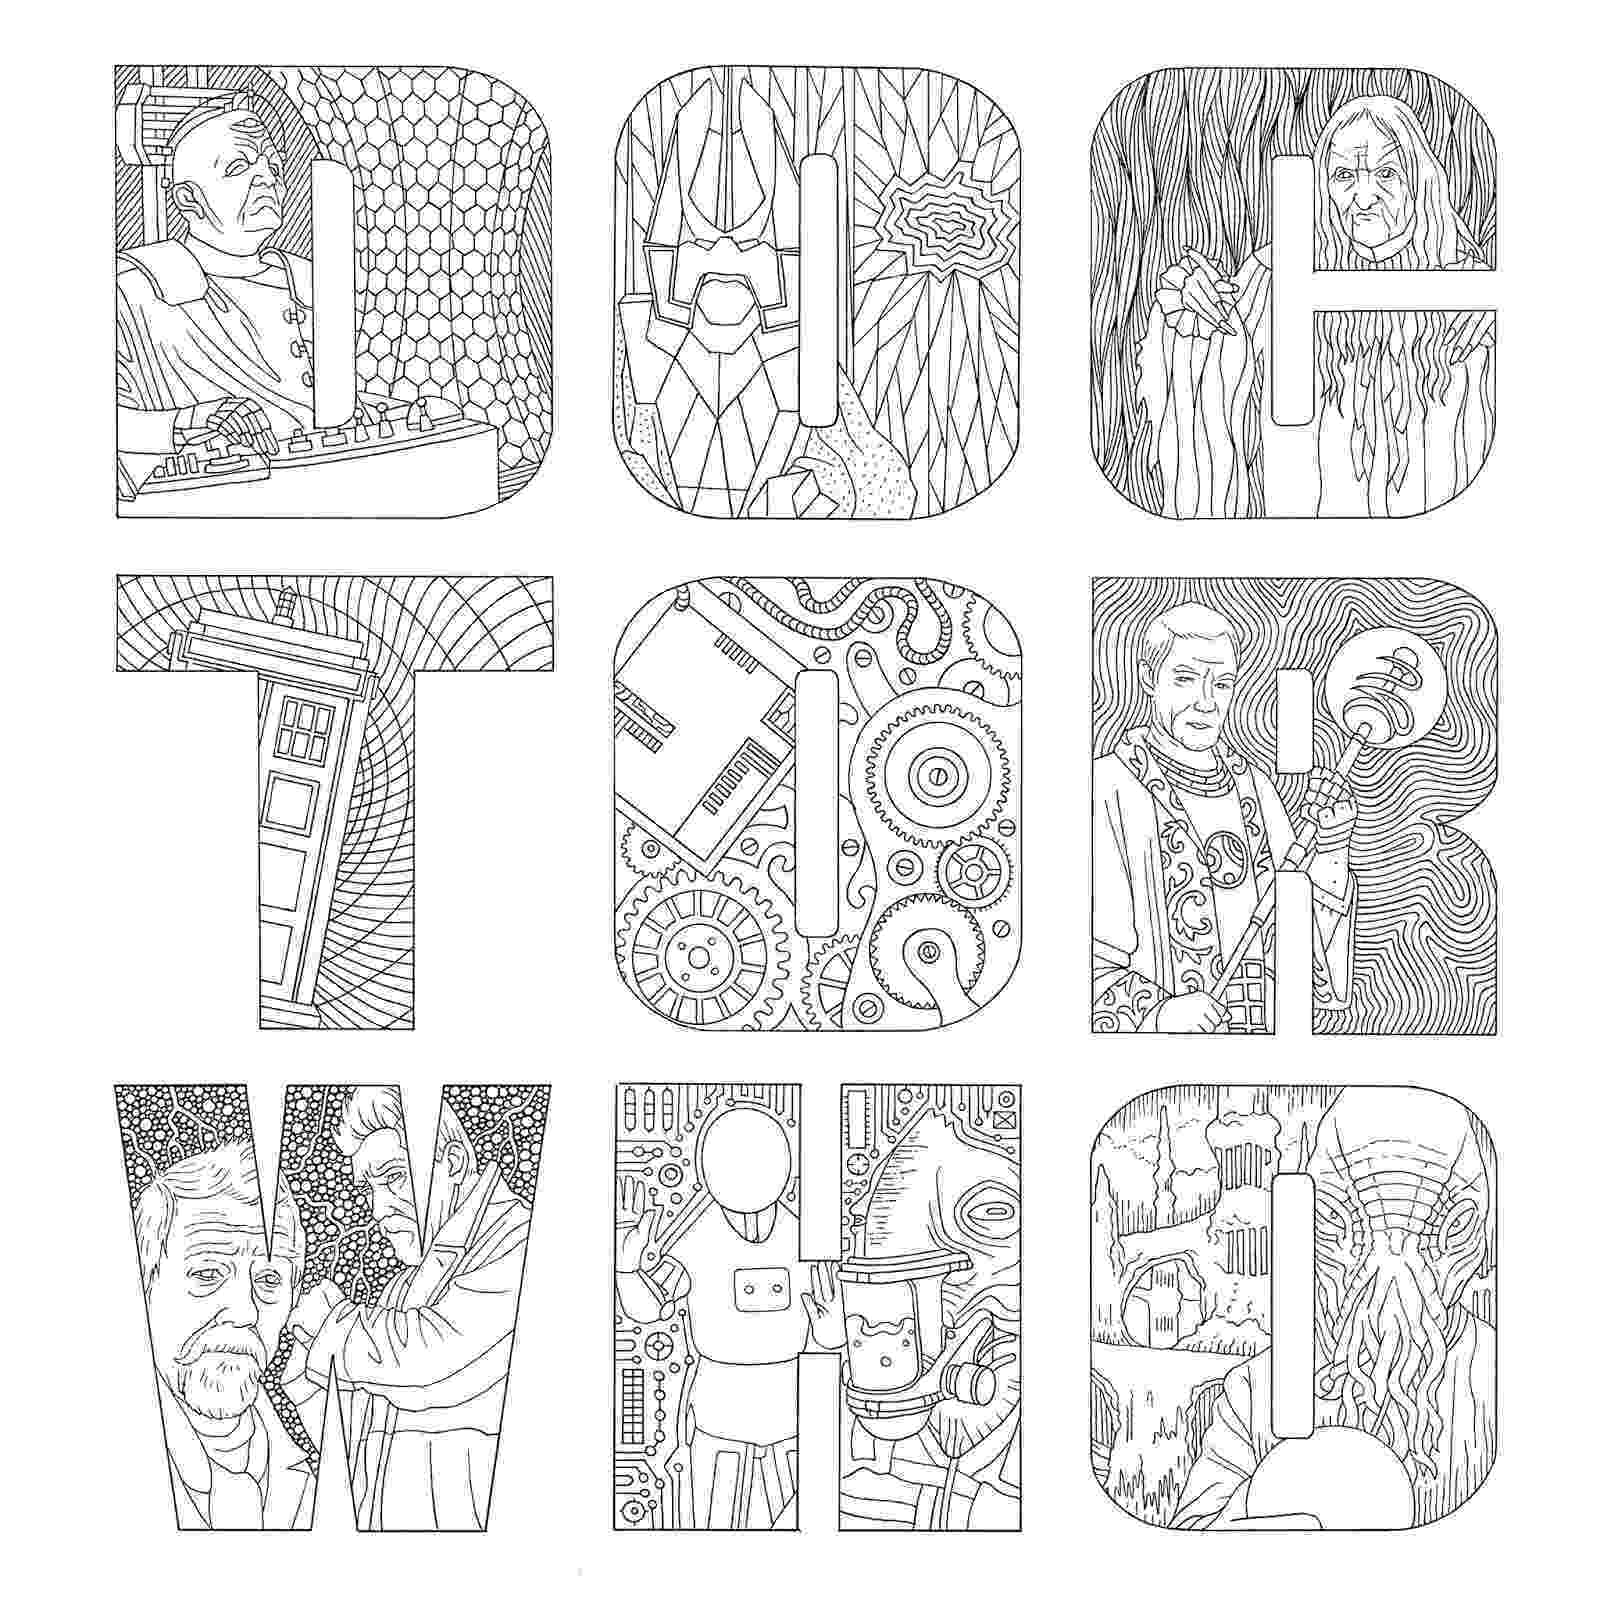 doctor who tardis coloring pages tardis coloring page google search tardis drawing abc coloring doctor pages who tardis